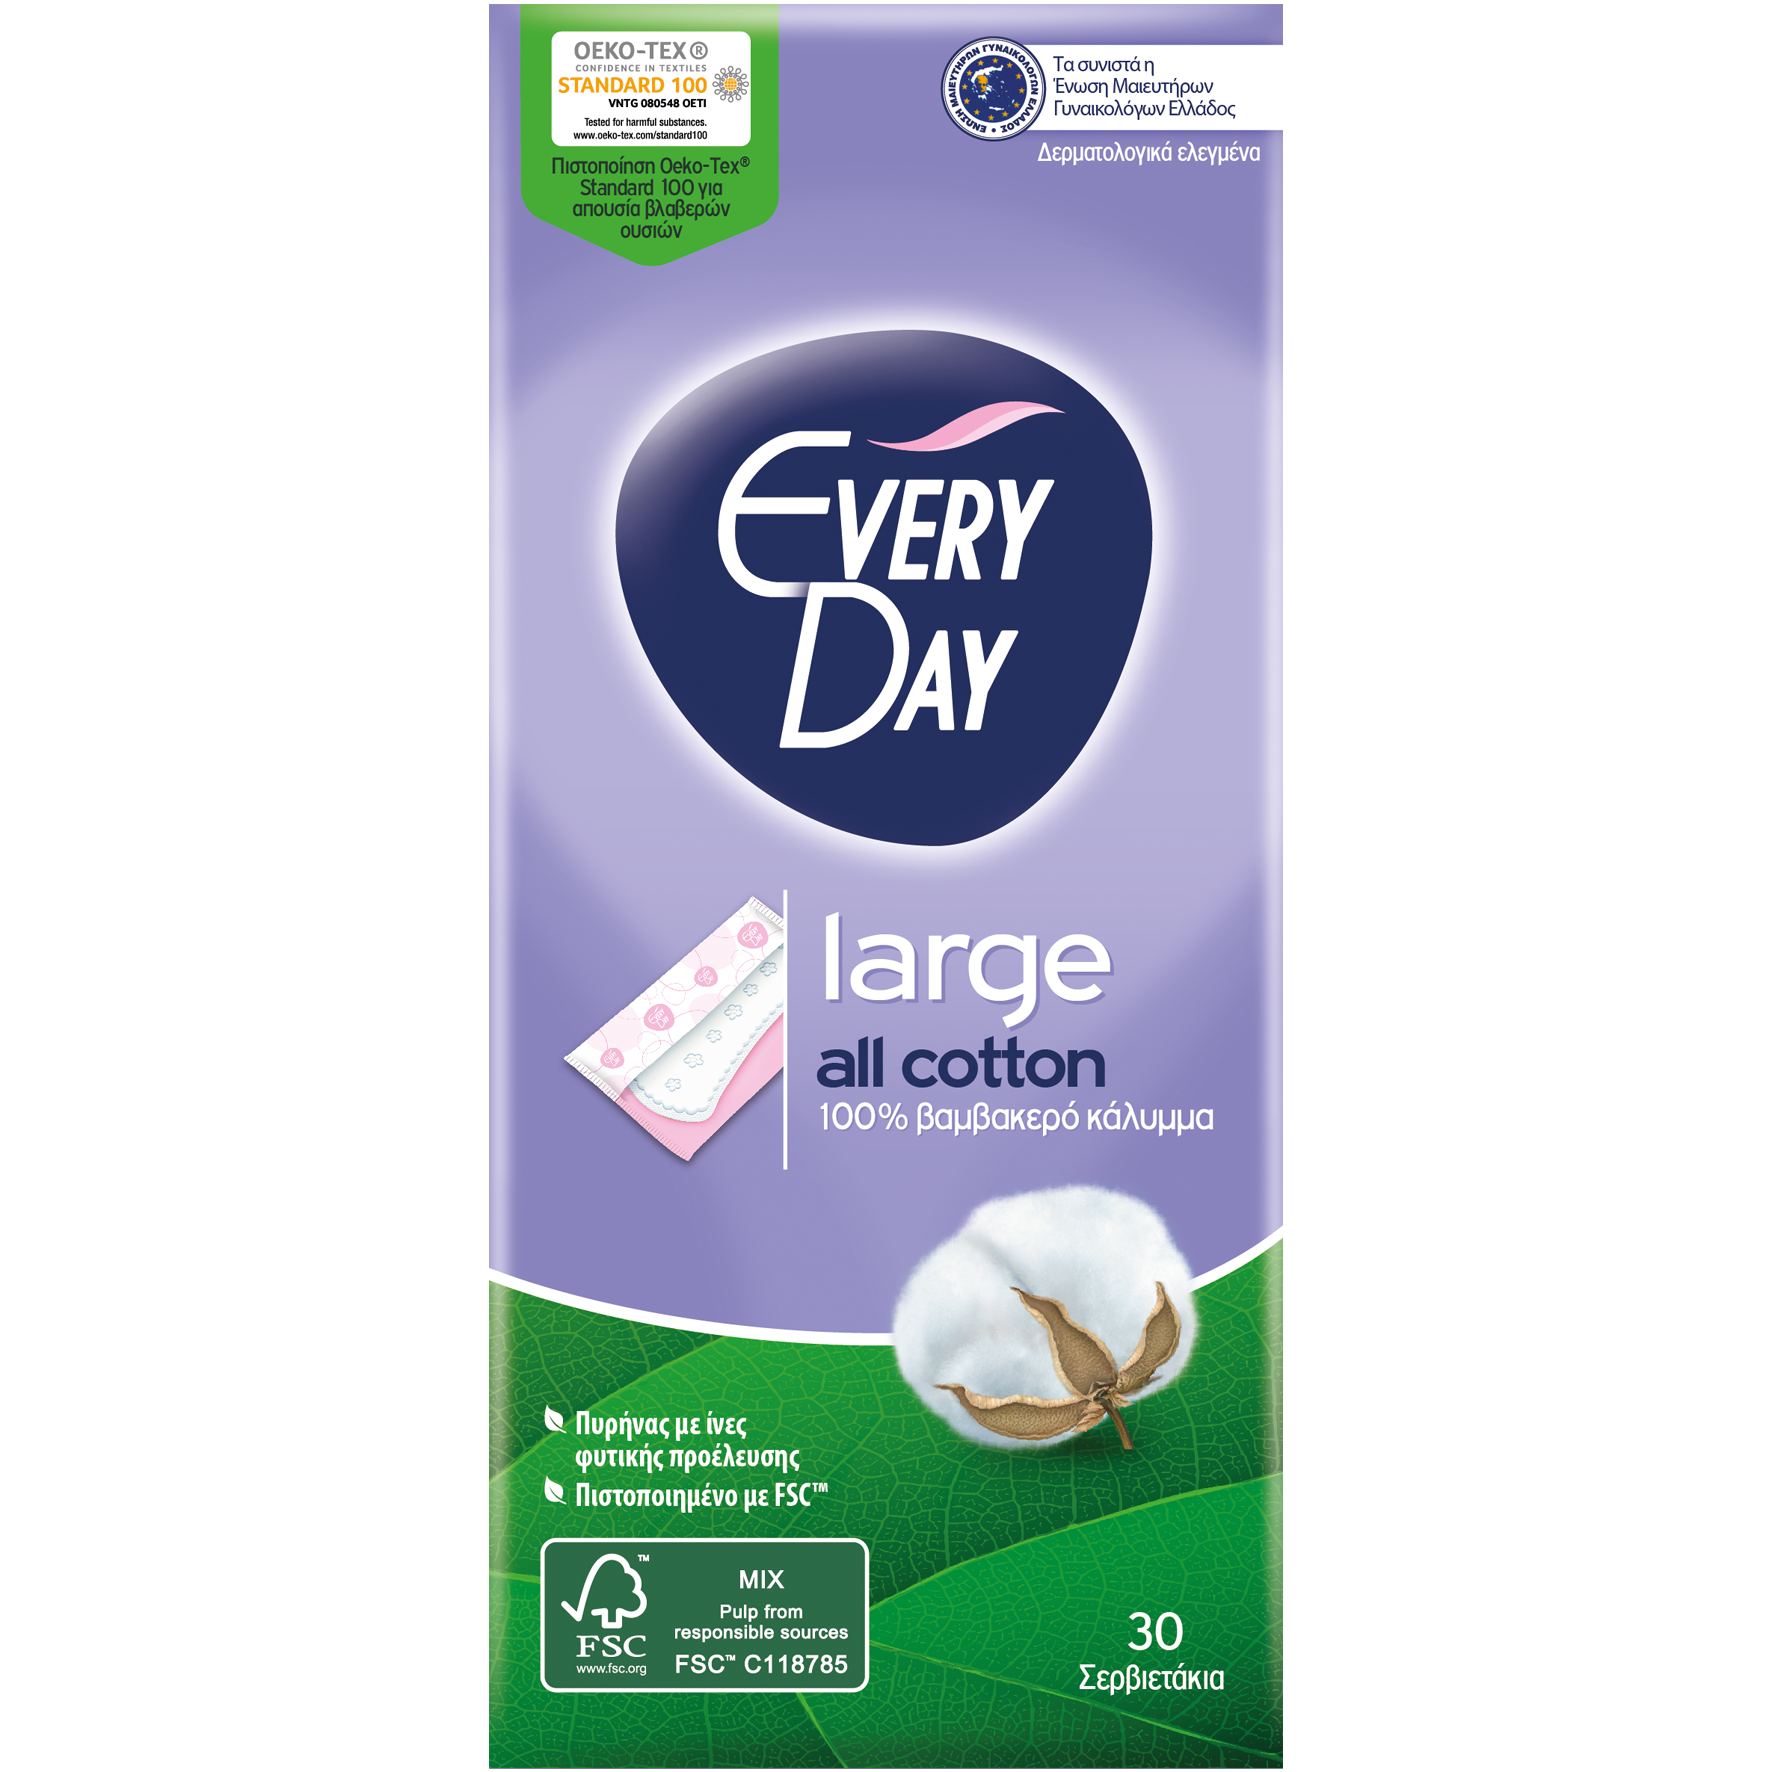 Every Day All Cotton Large Ανατομικά Σερβιετάκια με Βαμβακερό Κάλυμμα 30 Τεμάχια